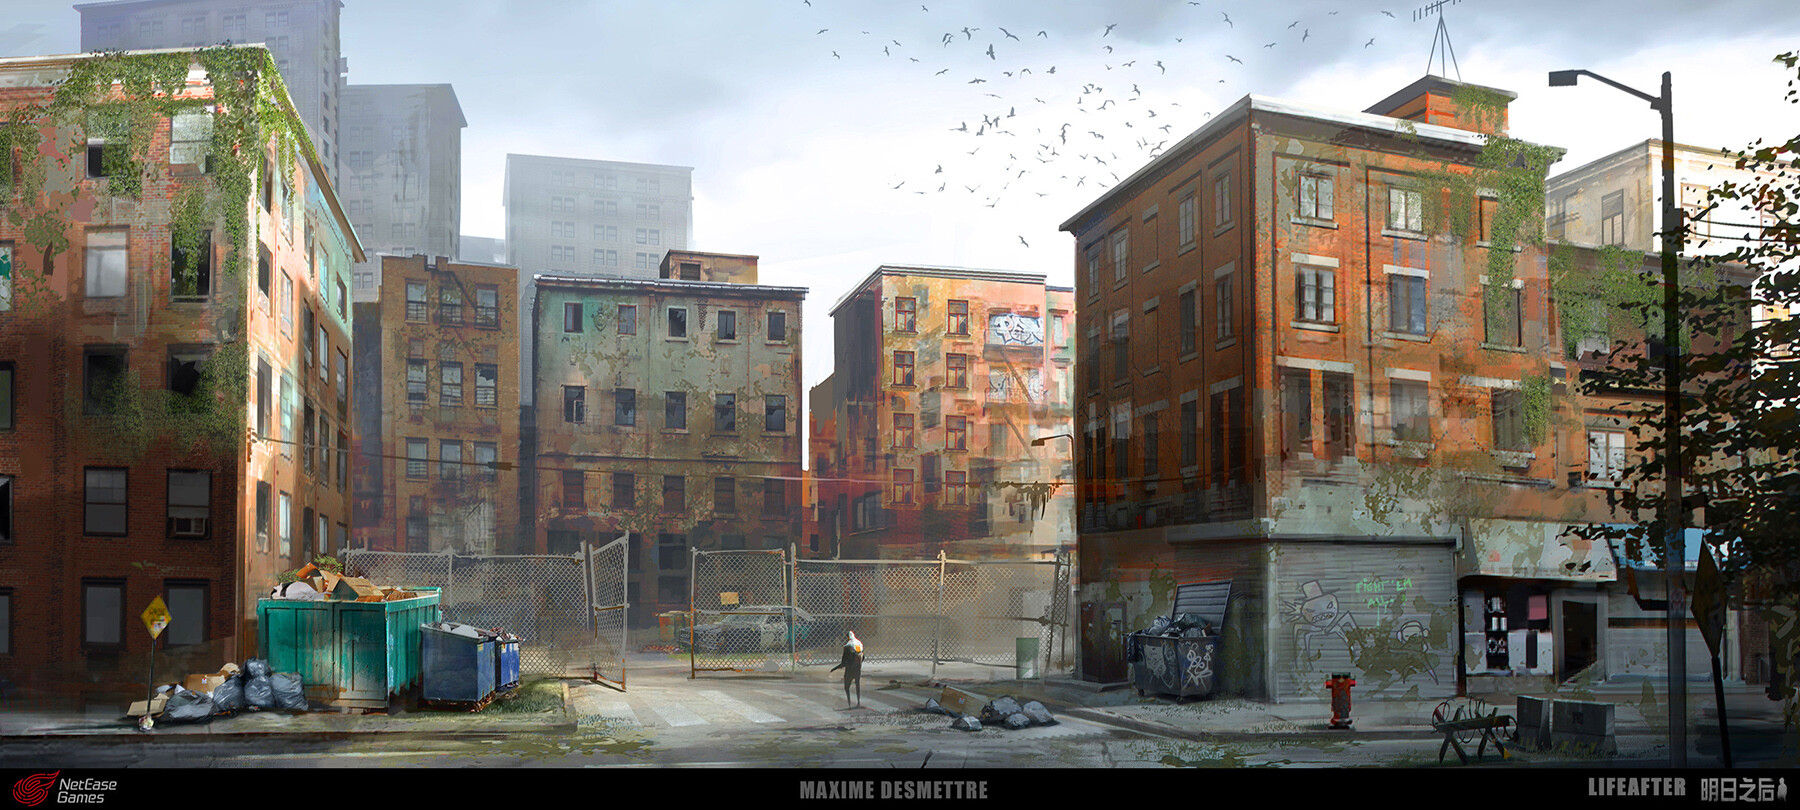 Life After - Residential Area Concept Art (2019)